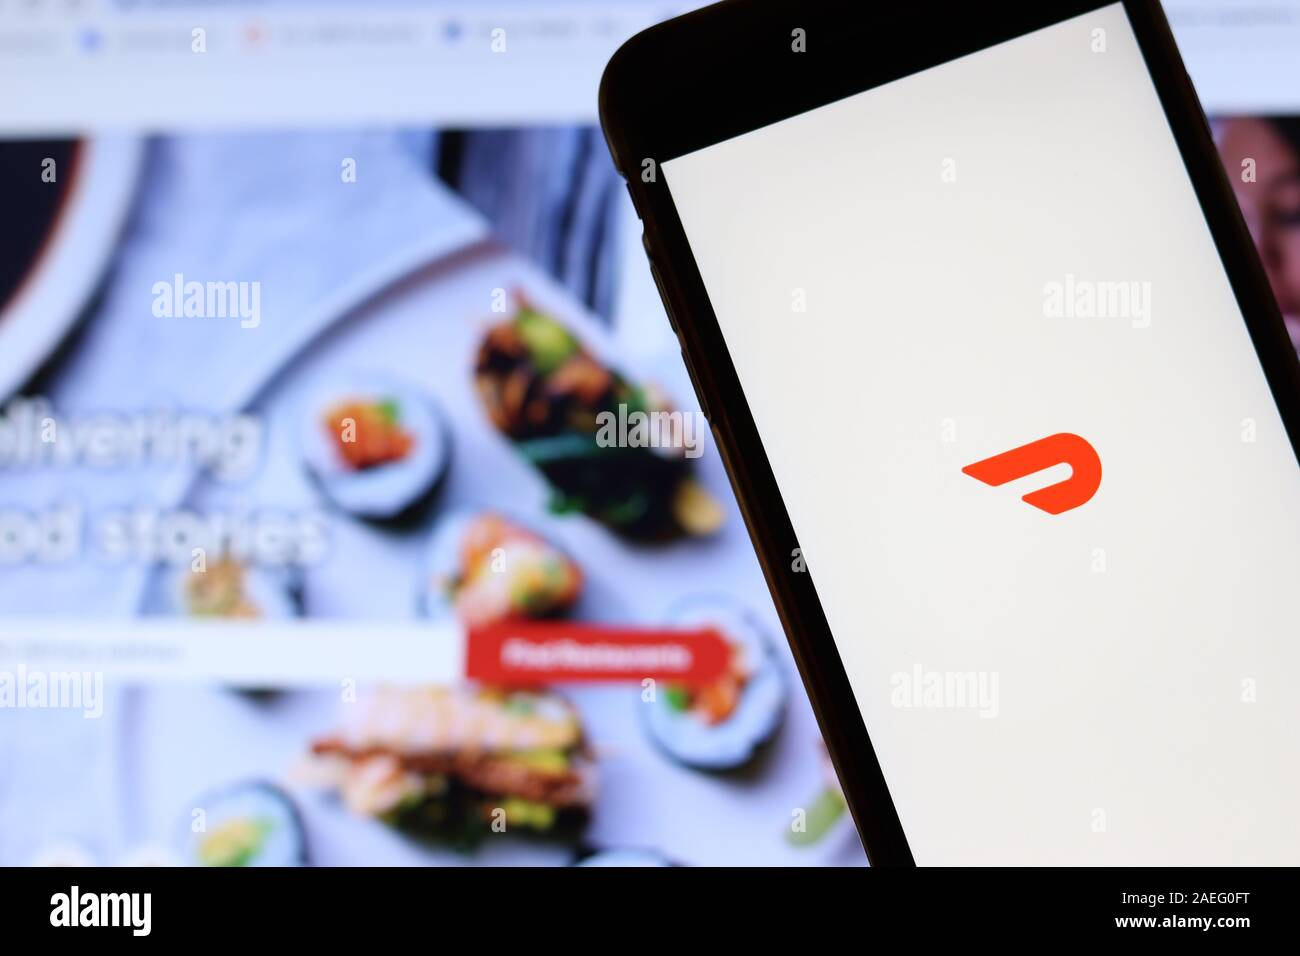 Los Angeles, California, USA - 21 November 2019: Doordash logo on phone screen with icon on laptop on blurry background, Illustrative Editorial. Stock Photo